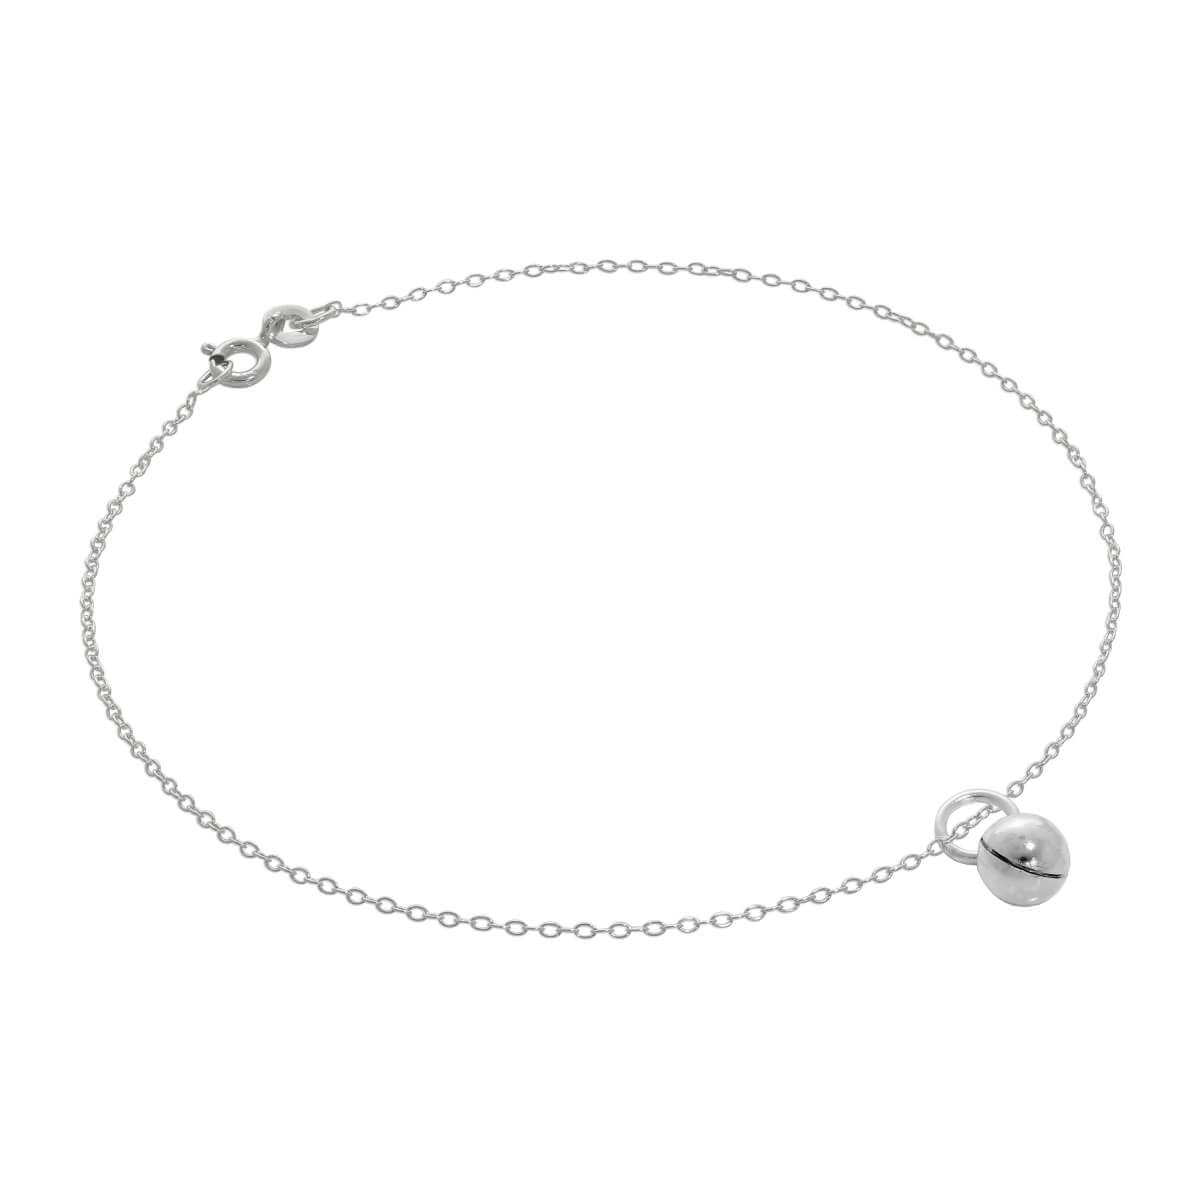 Fine Sterling Silver Belcher Anklet with Chiming Ball Charm - 10 Inches